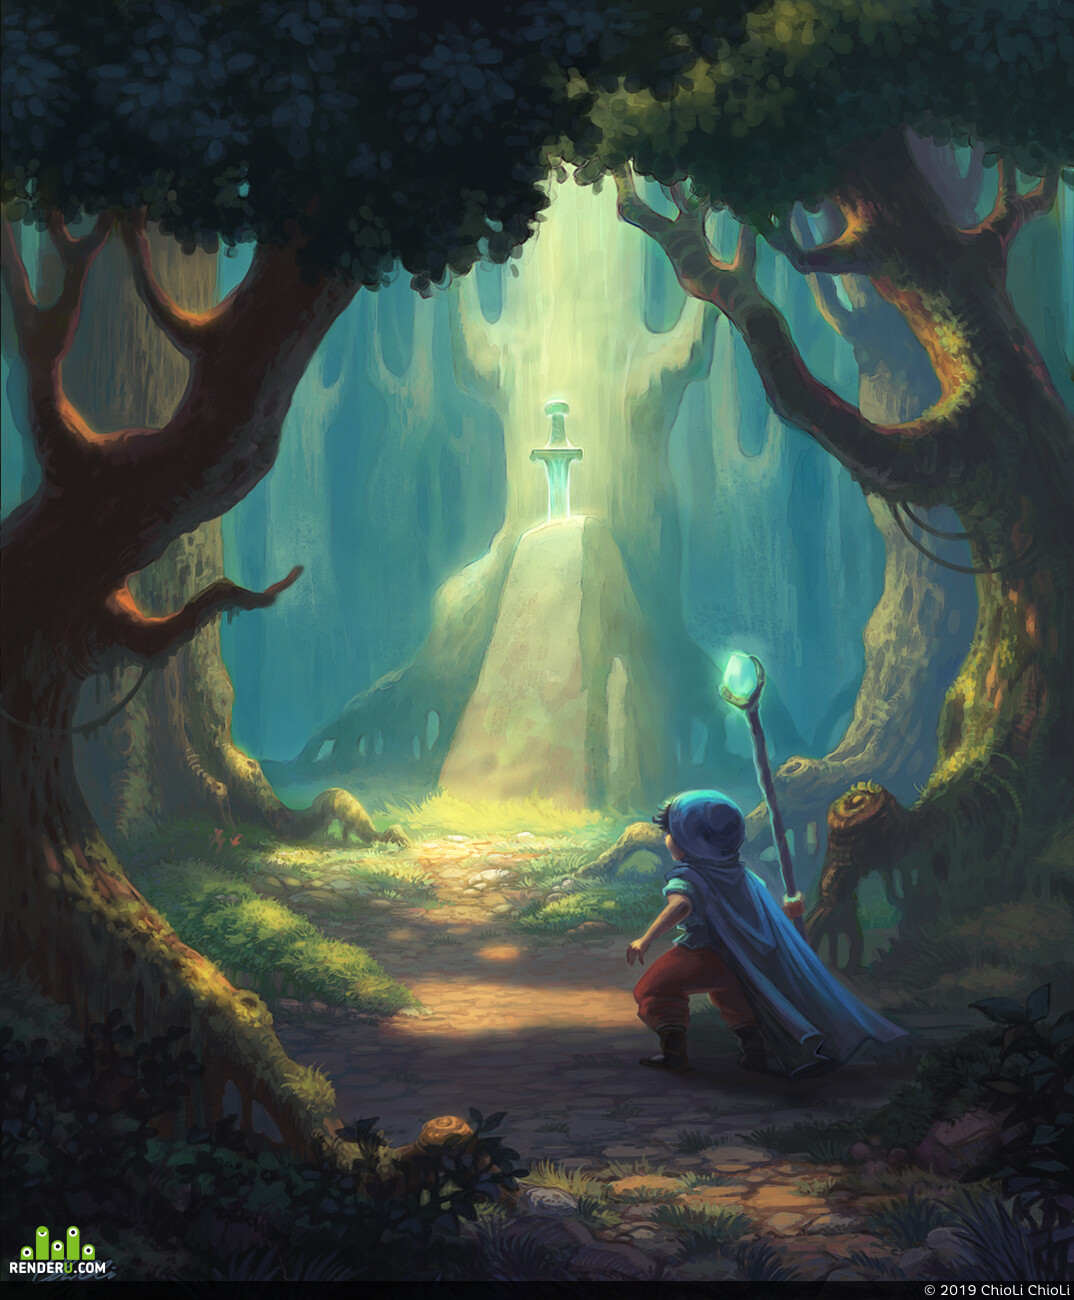 adventures, Fantasy, magic forest, sword in the stone, adventurer, miracle